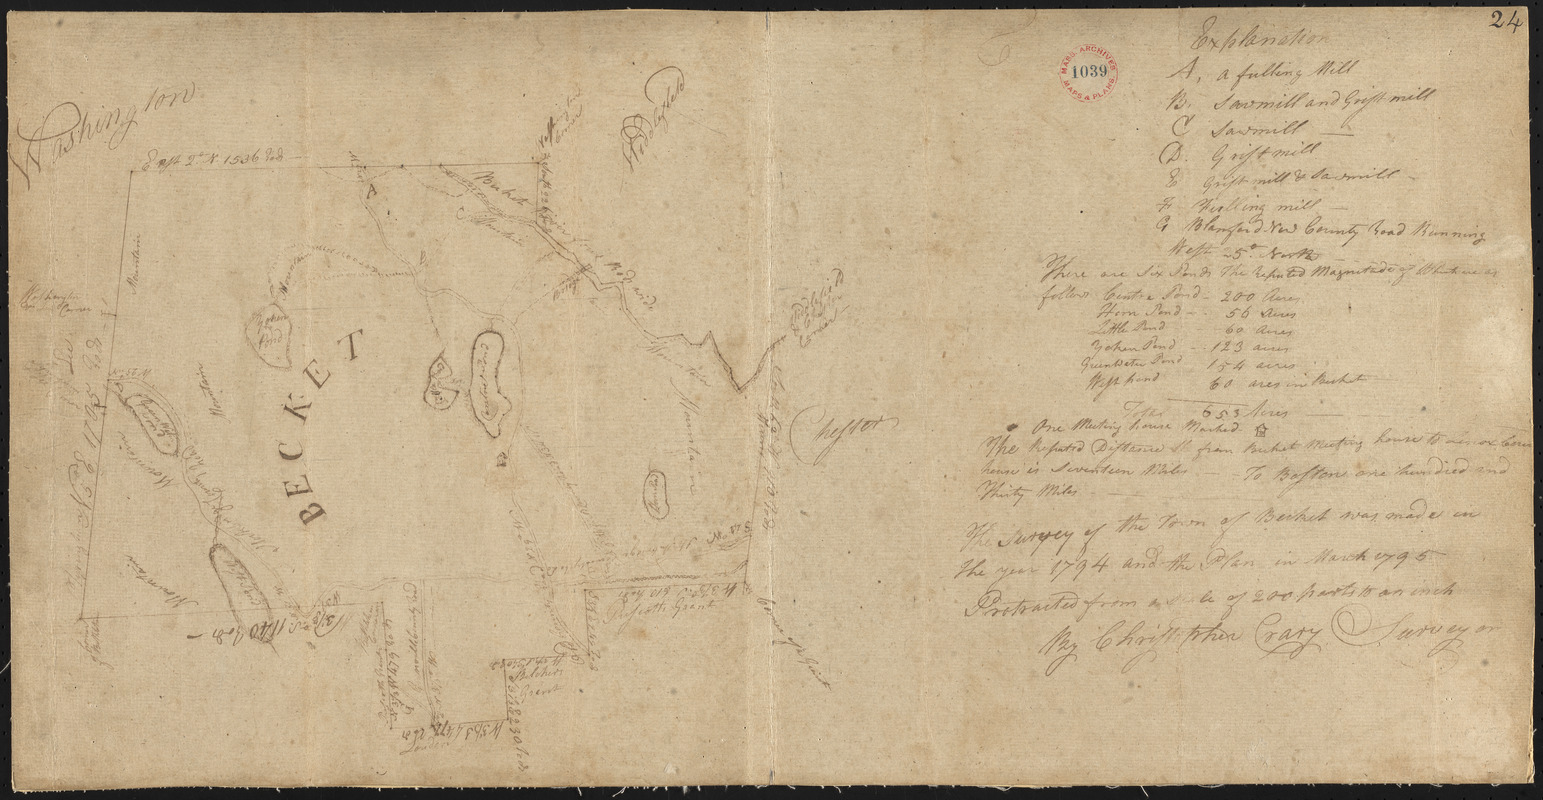 Plan of Becket surveyed by Christopher Crary, dated March, 1795.